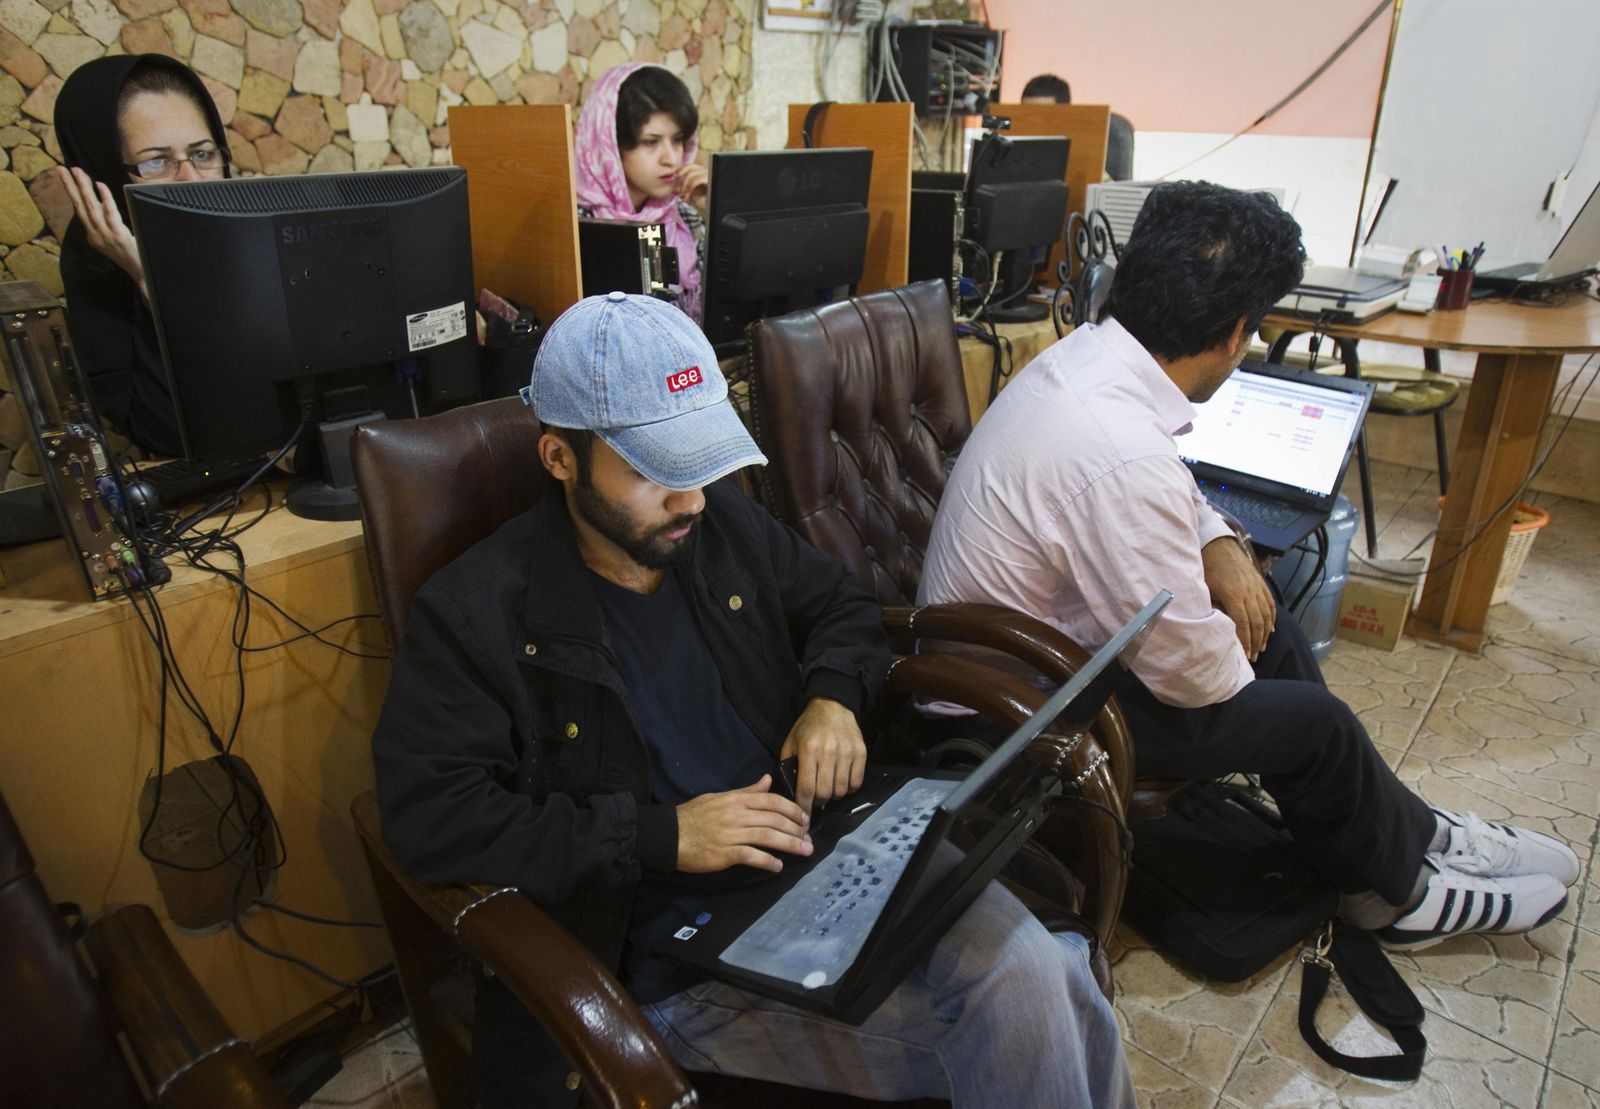 Iran / Internetcafe